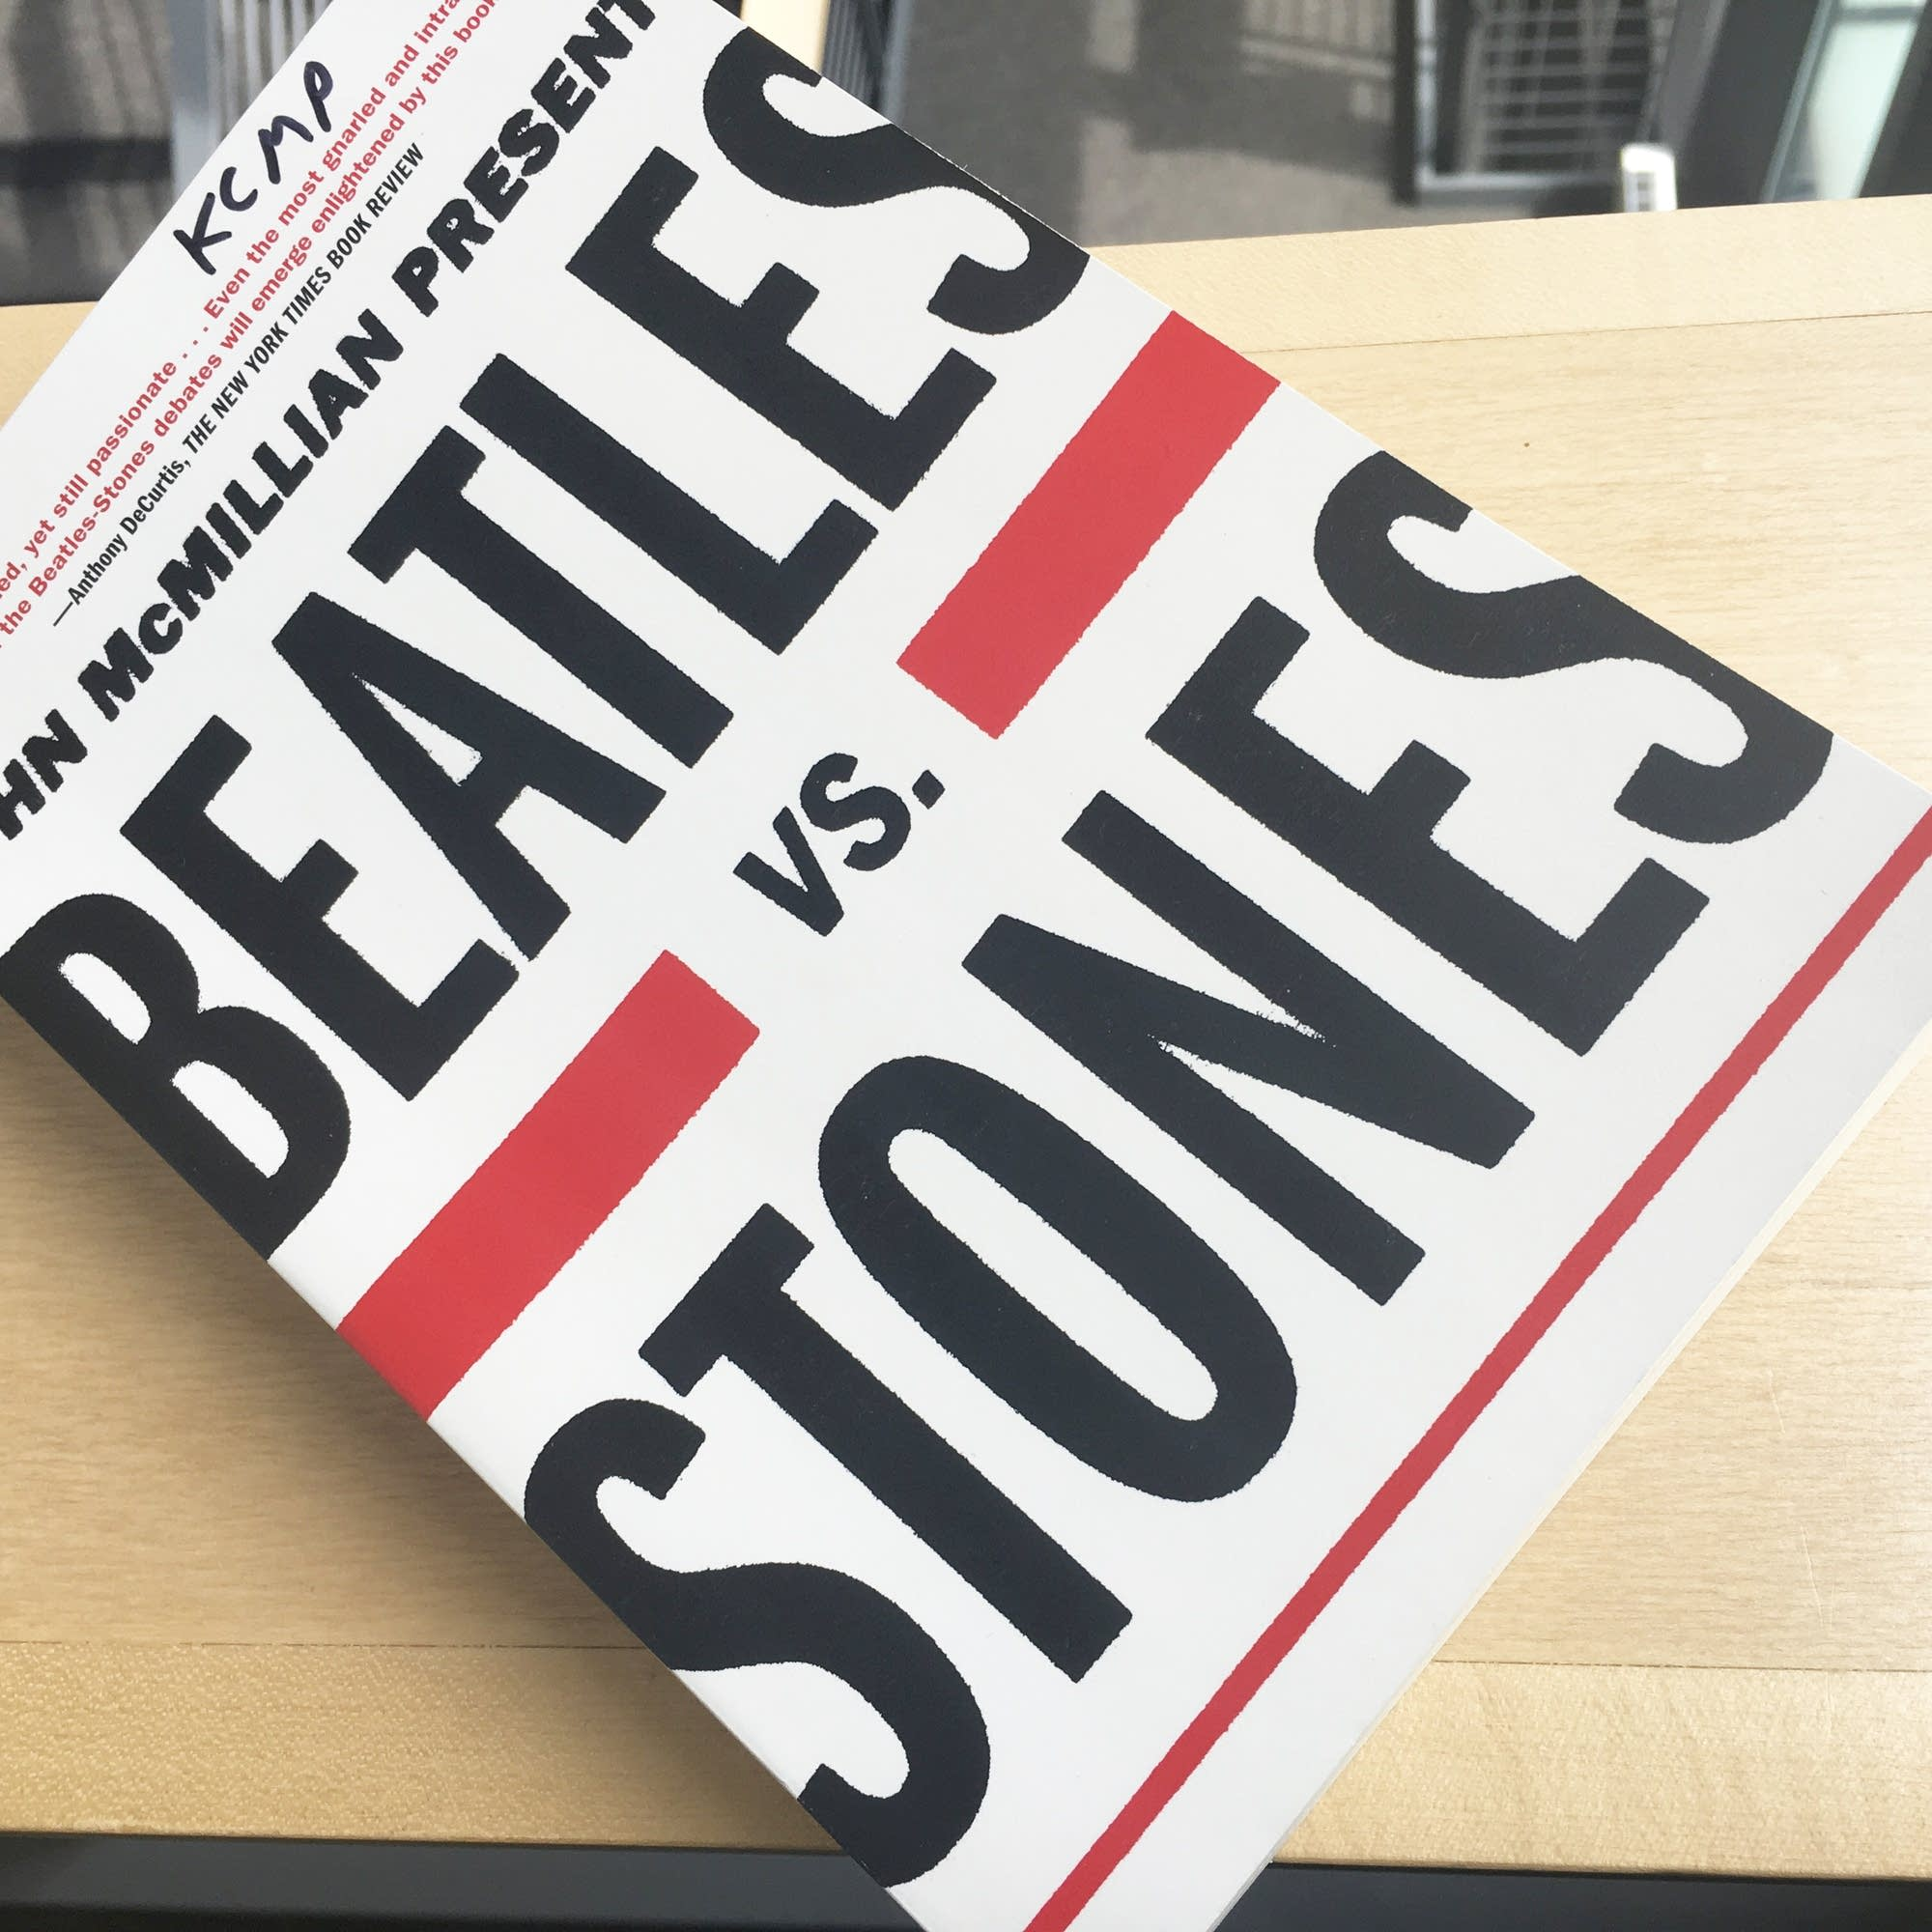 John McMillan's 'Beatles vs. Stones'